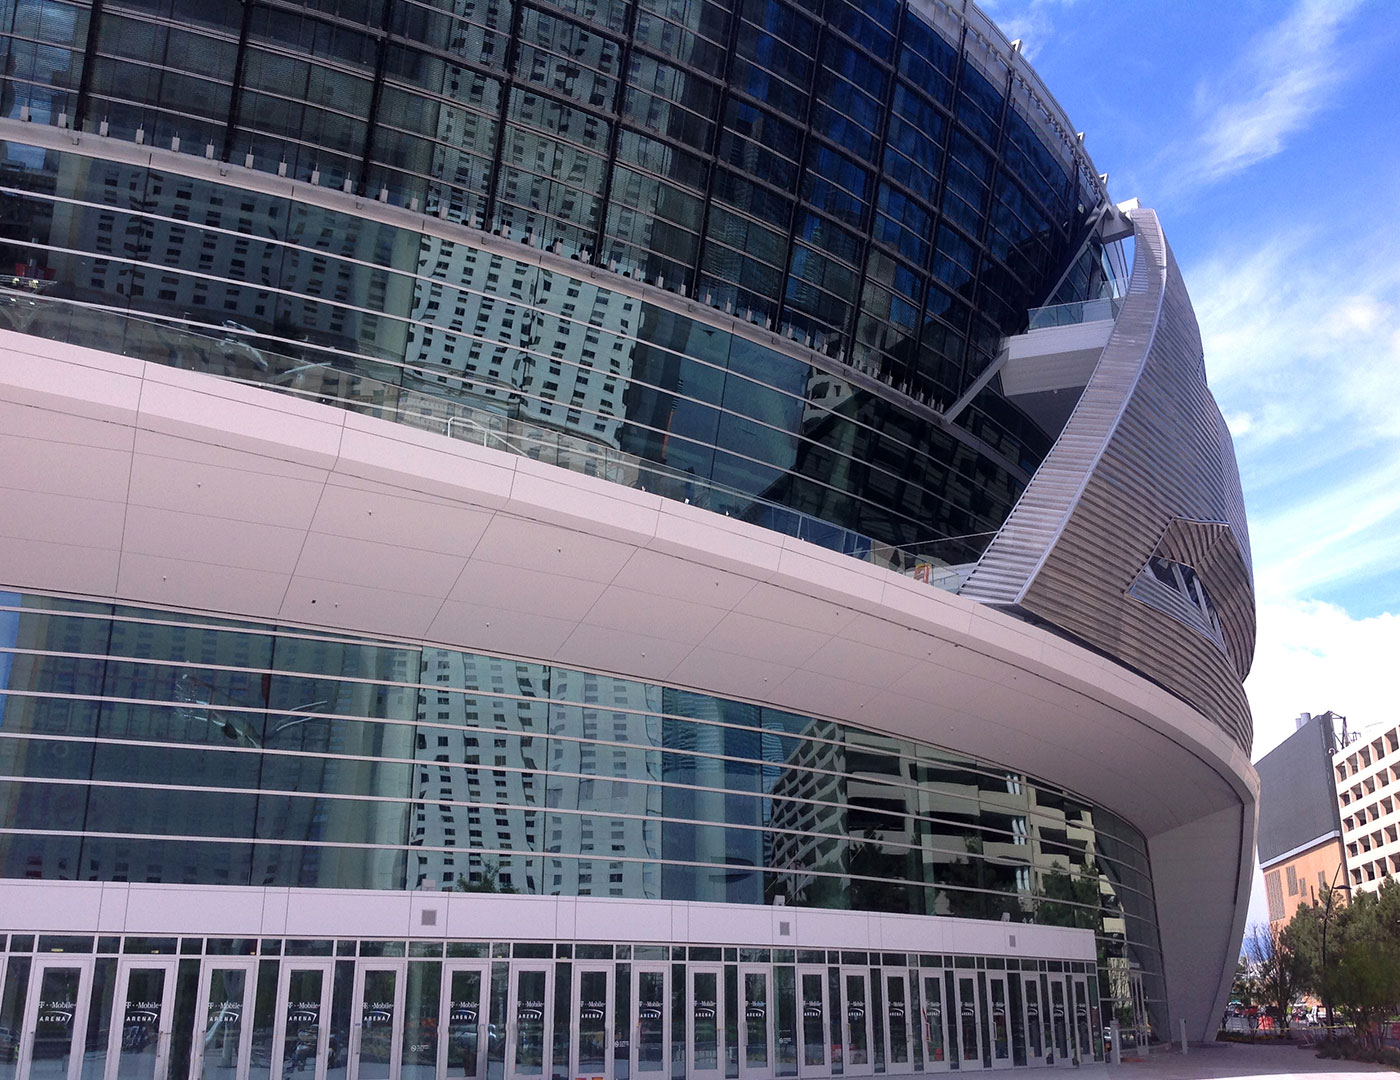 Railings play a crucial role in T-Mobile Arena's safety